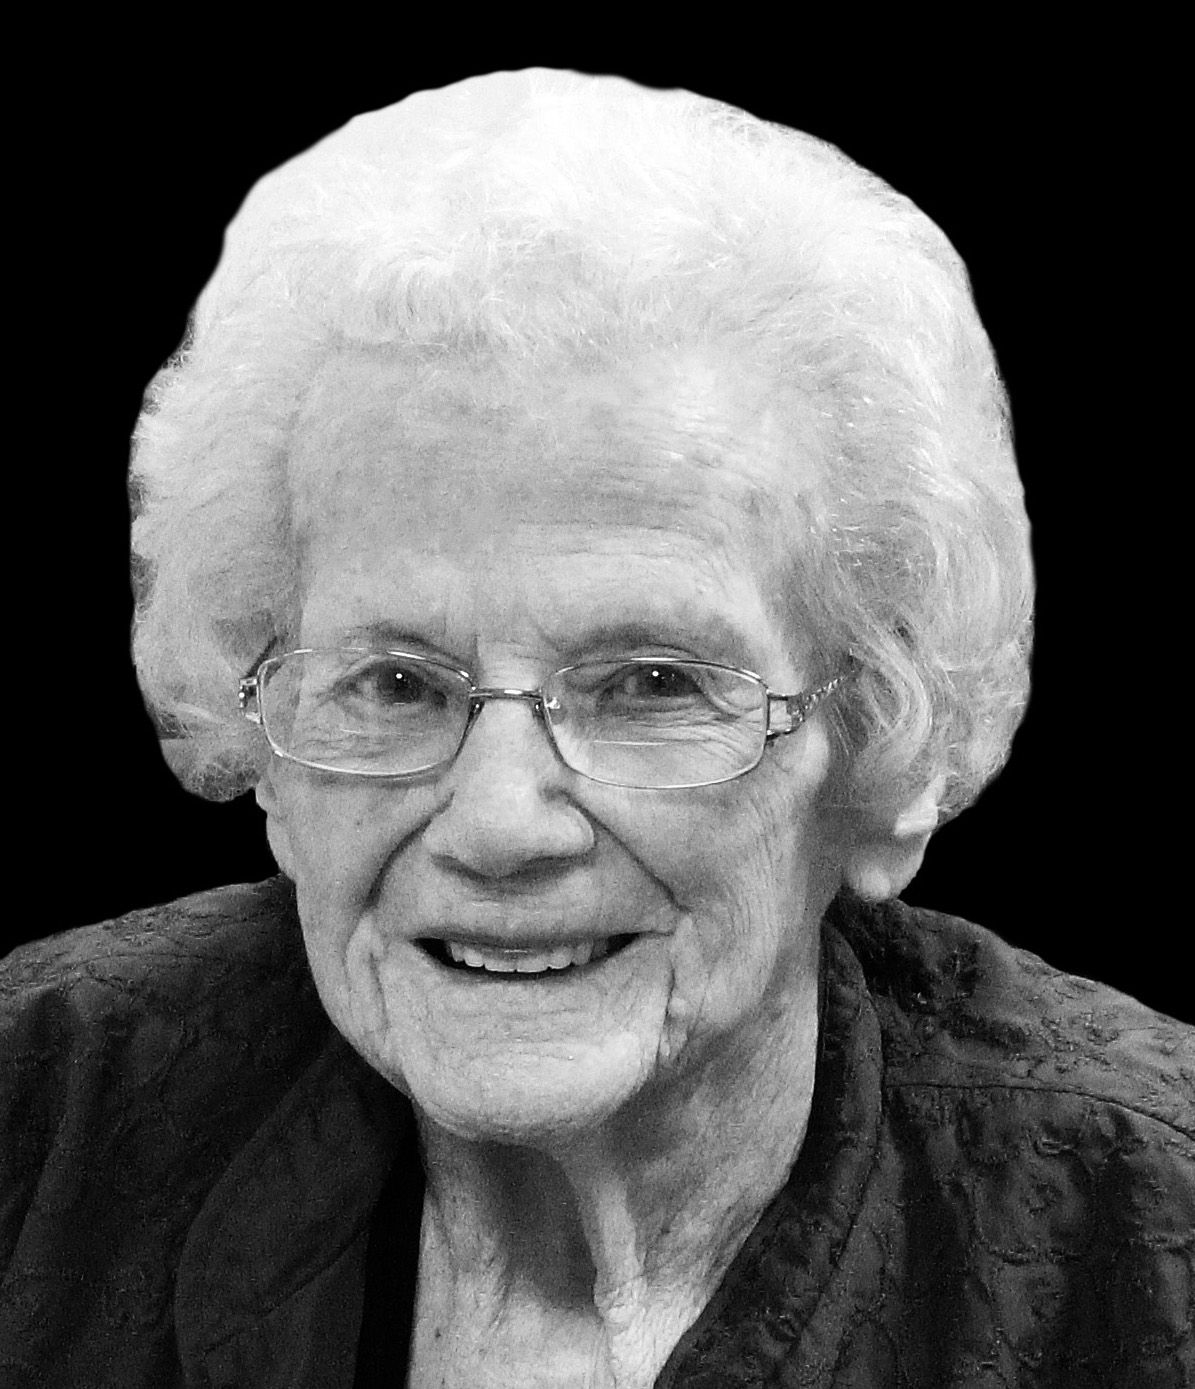 Maxine Elizabeth Melroy, 99 years of age, of Holdrege